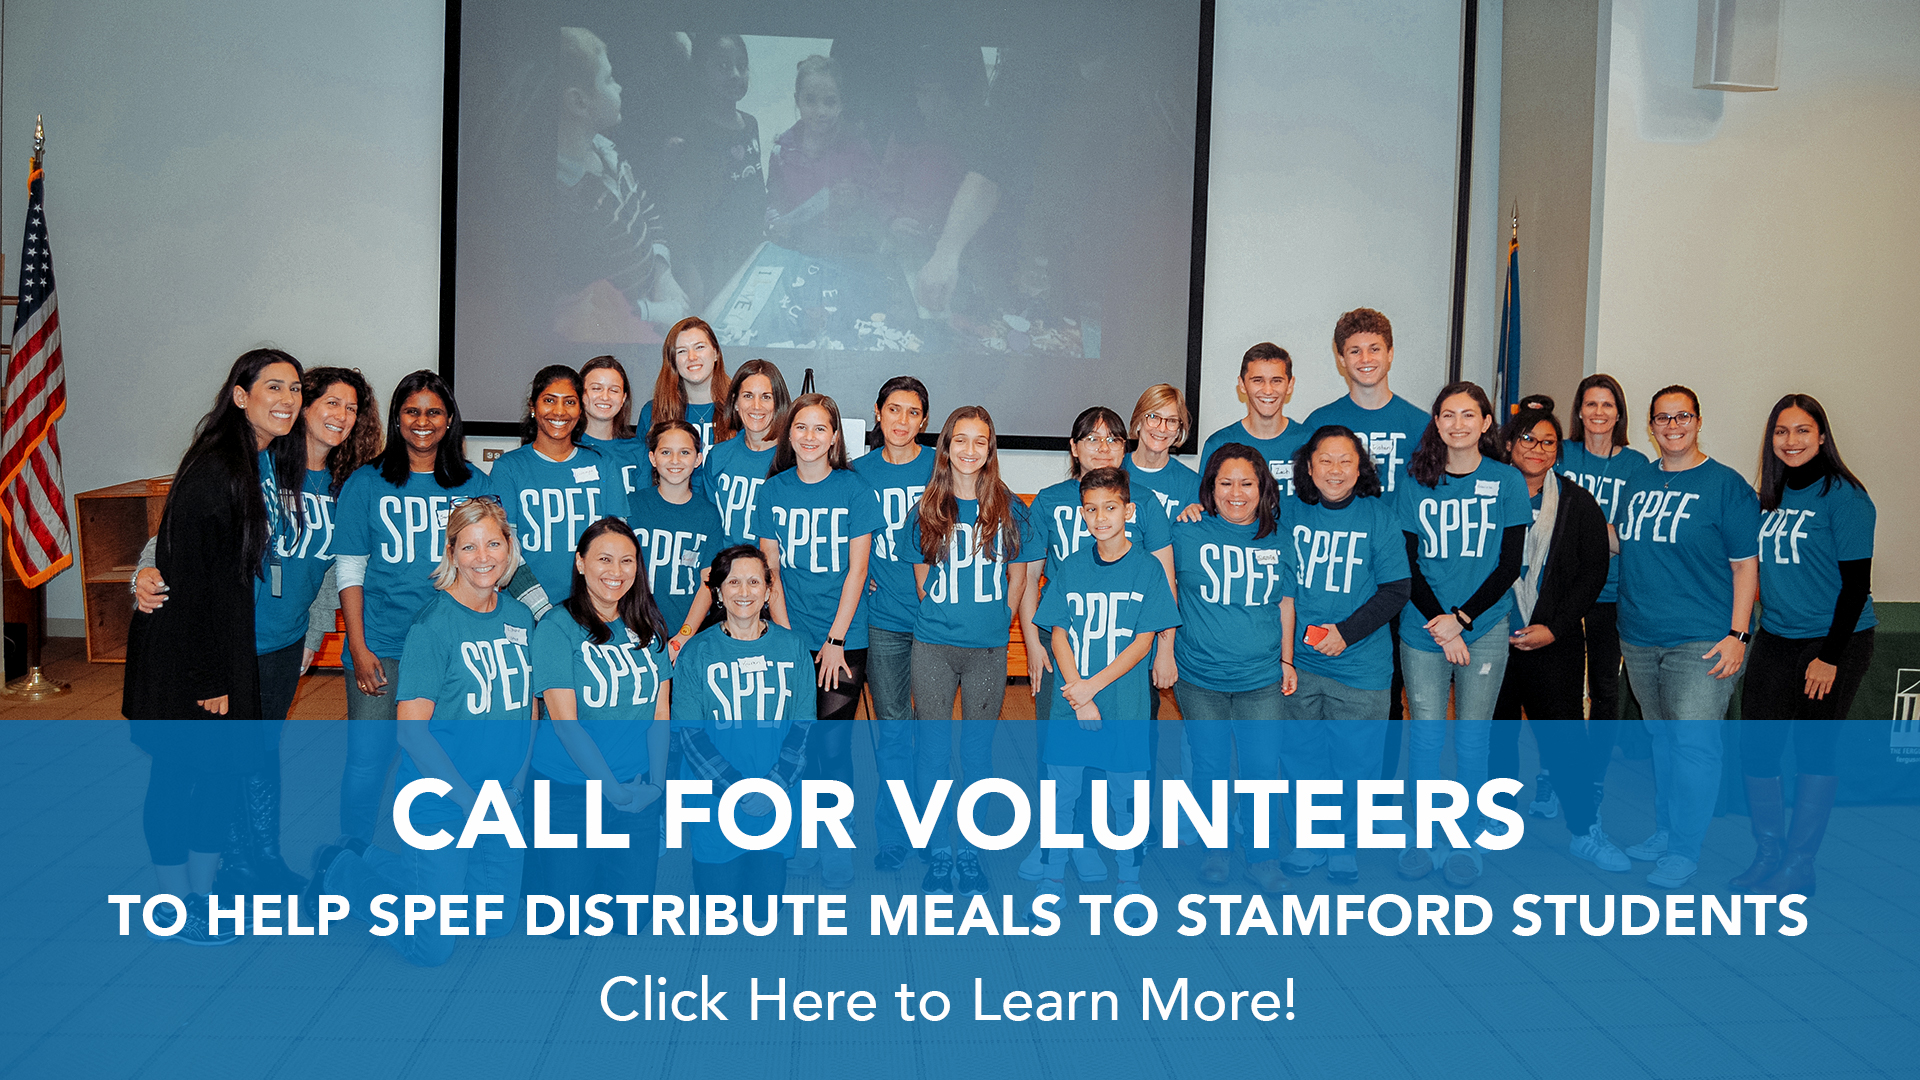 Click here to volunteer to help SPEF distribute meals to Stamford Students!